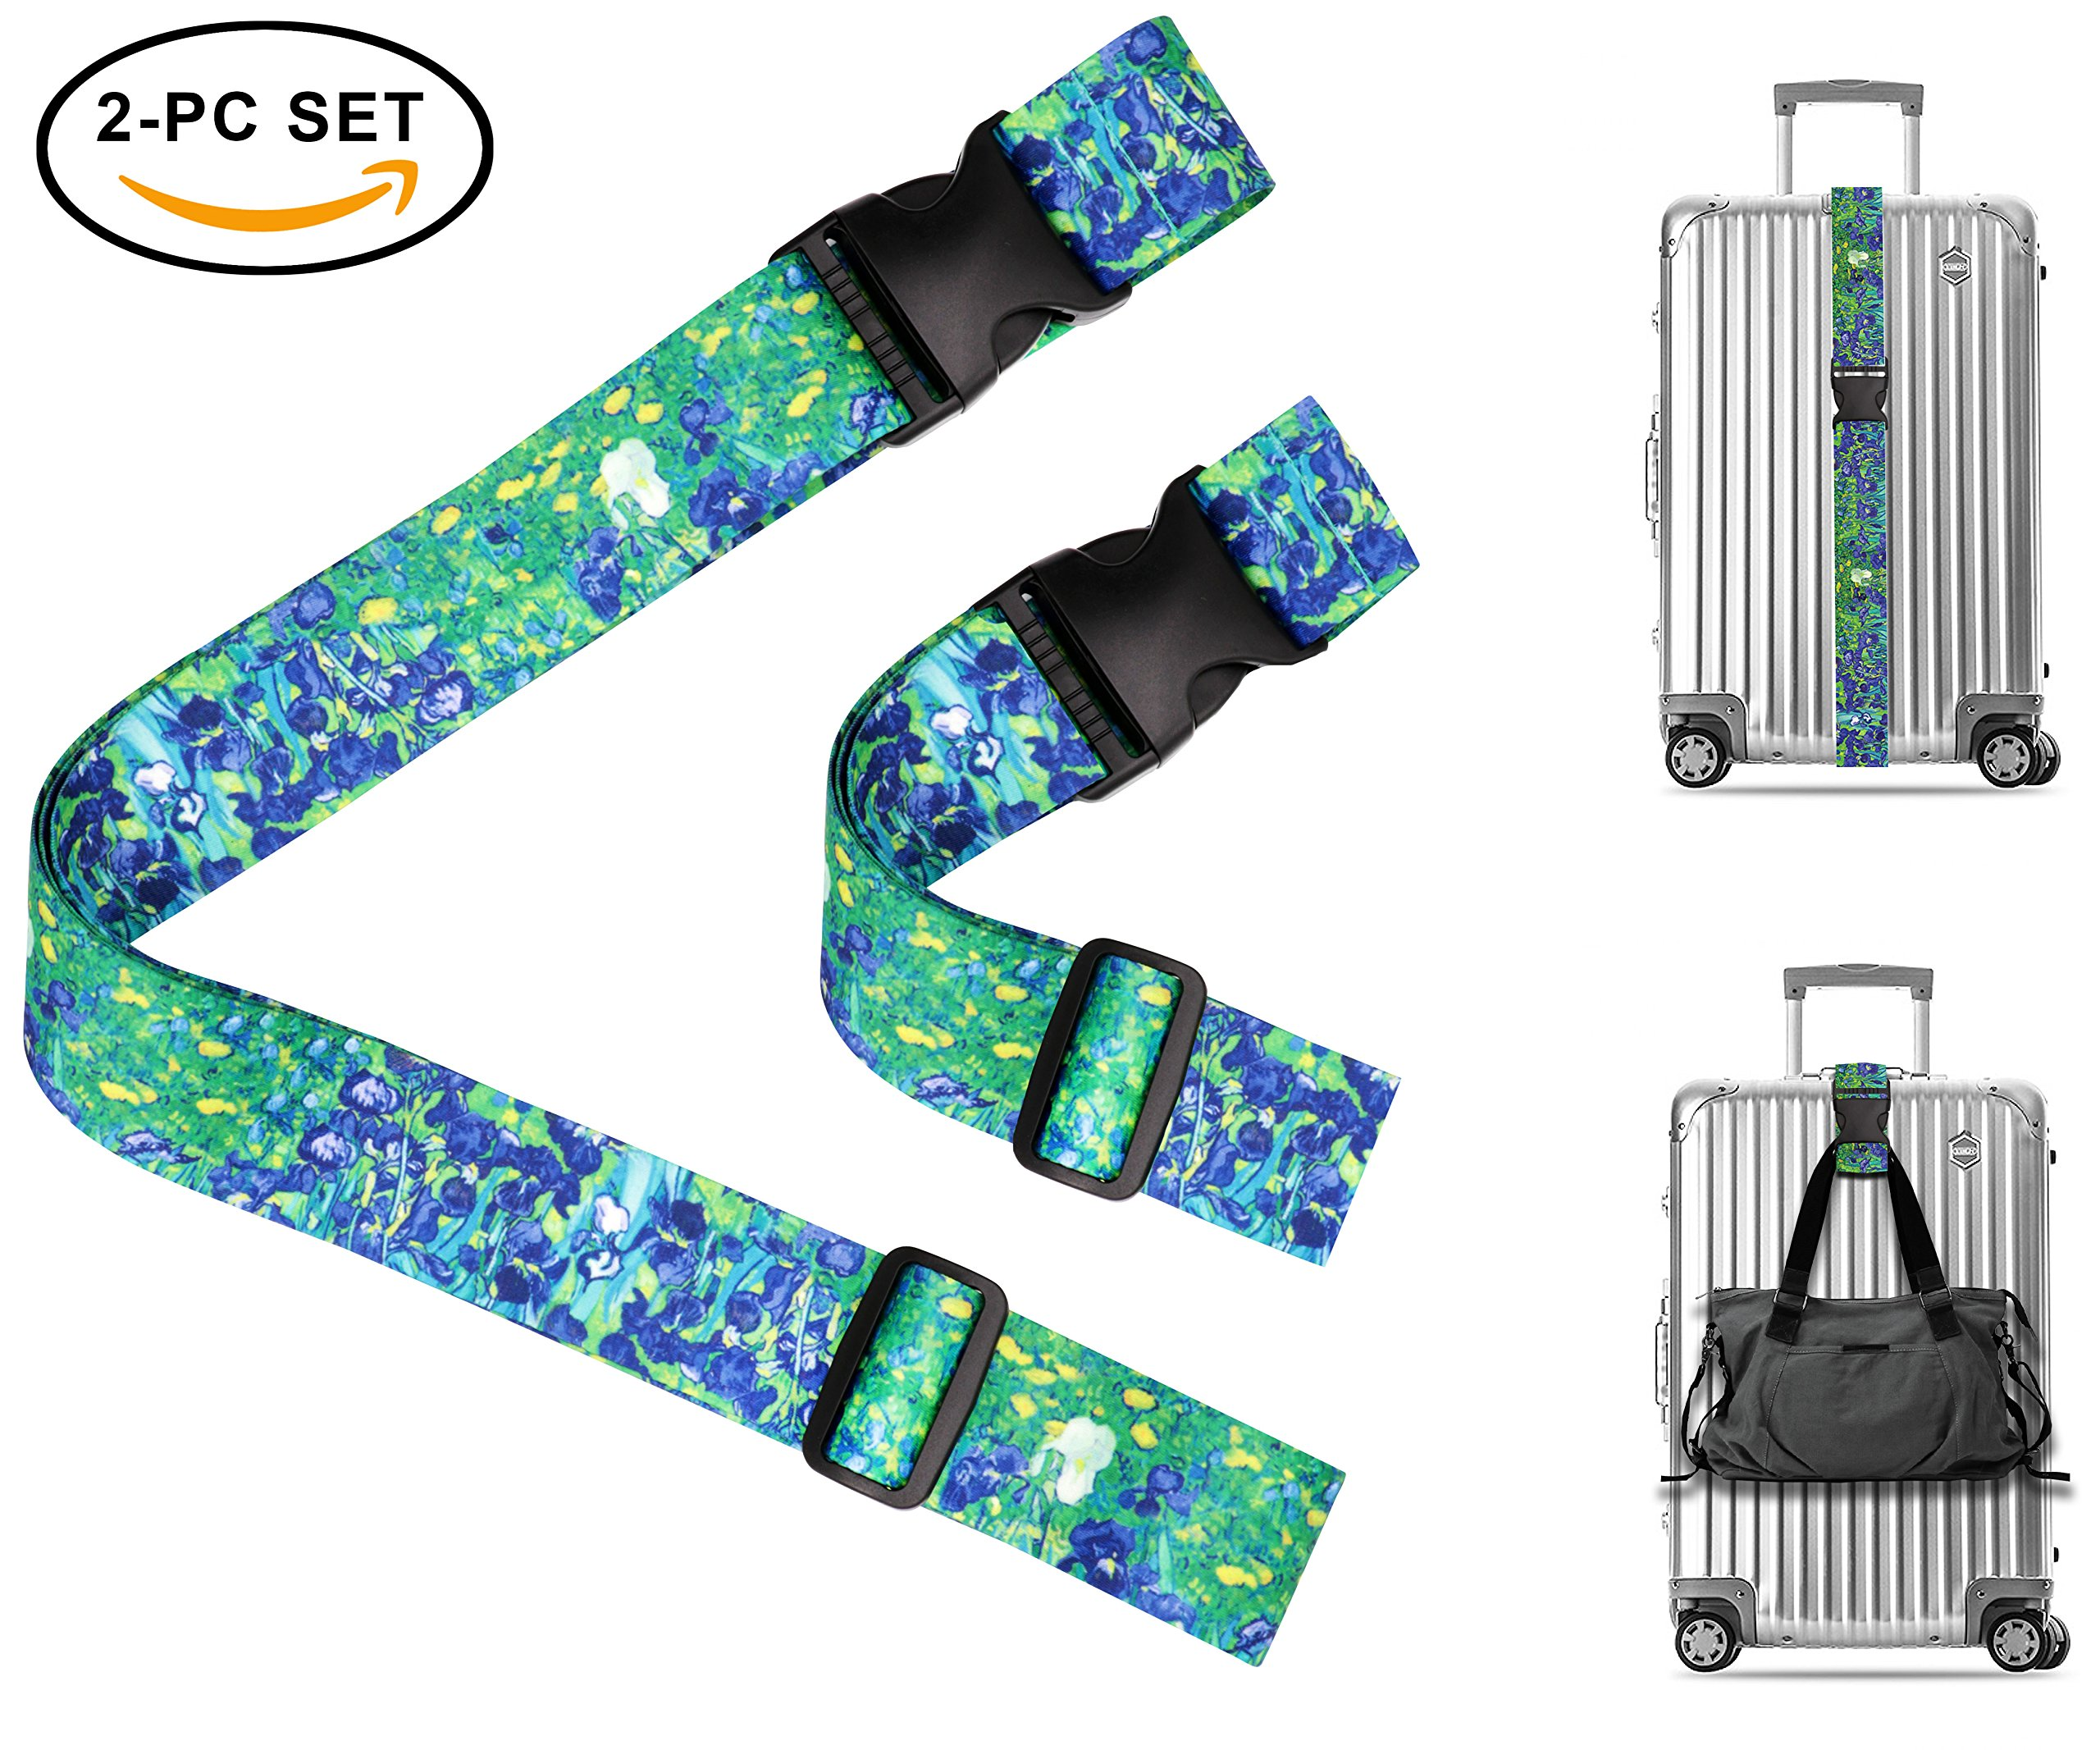 Vincent Van Gogh Irises Travel Luggage Strap Suitcase Security Belt. Heavy Duty & Adjustable. Must Have Travel Accessories. TSA Compliant. 1 Luggage Strap & 1 Add A Bag Strap. 2-Piece Set.